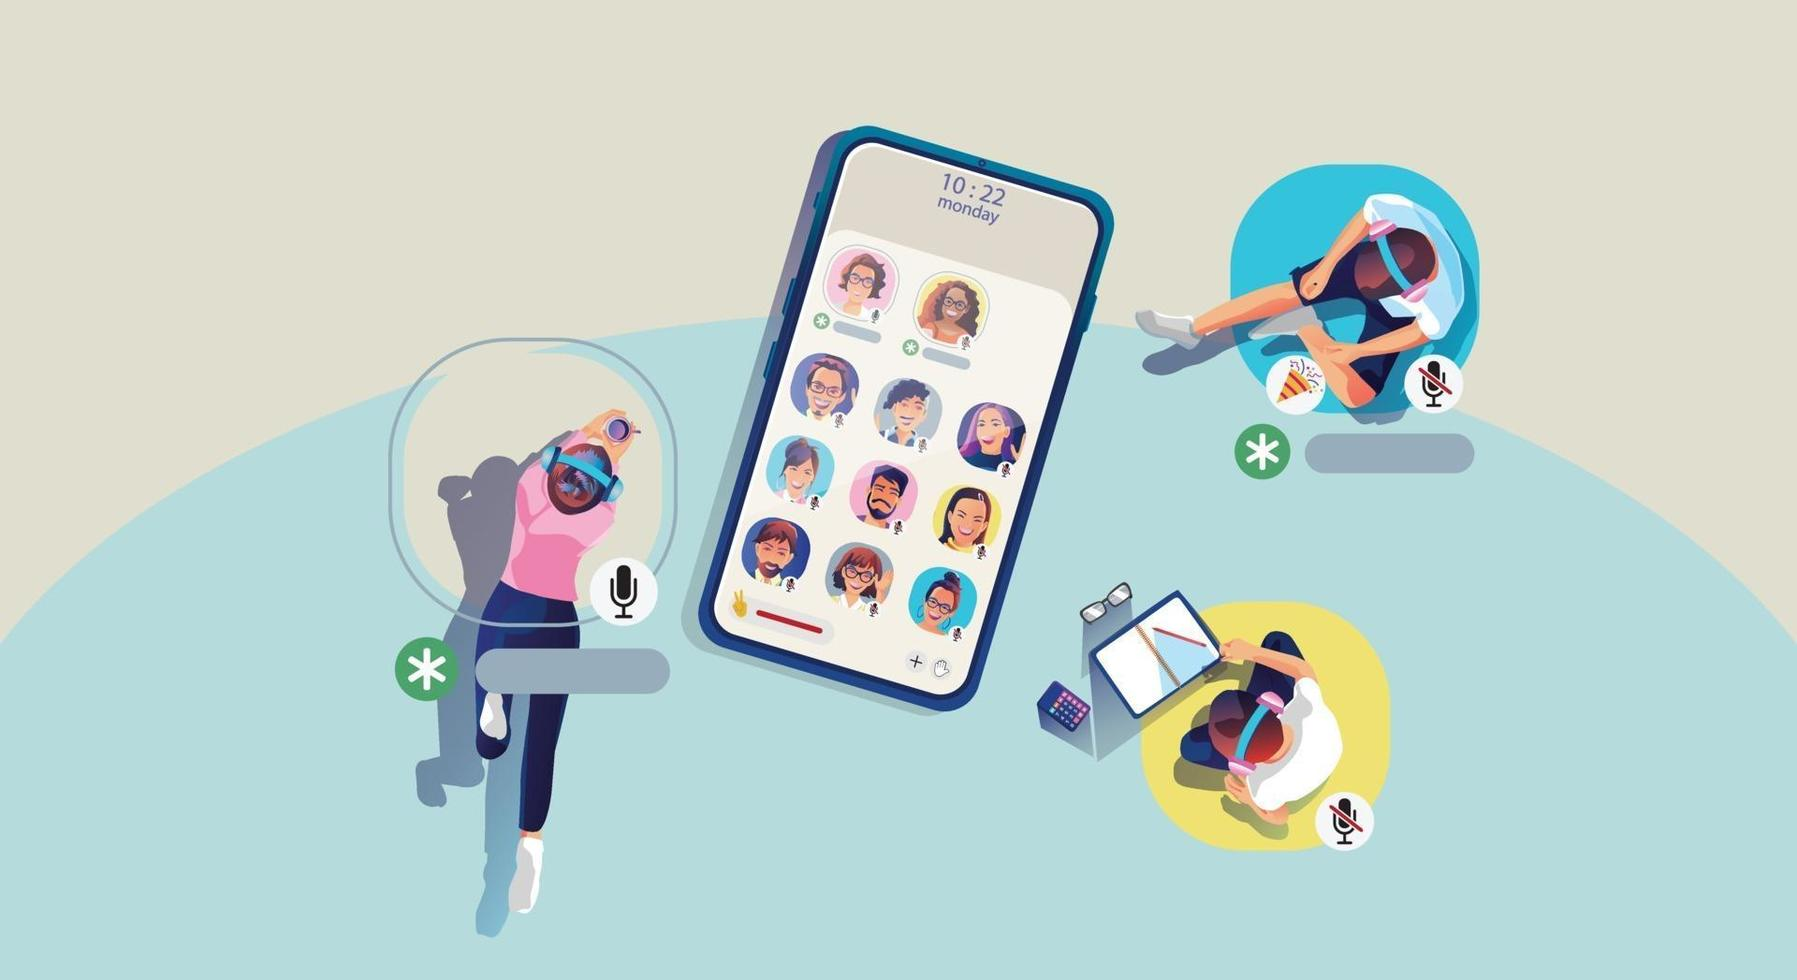 People use headphones to listen to smartphone, screen shows status of people using social networking applications, learning or meeting online vector